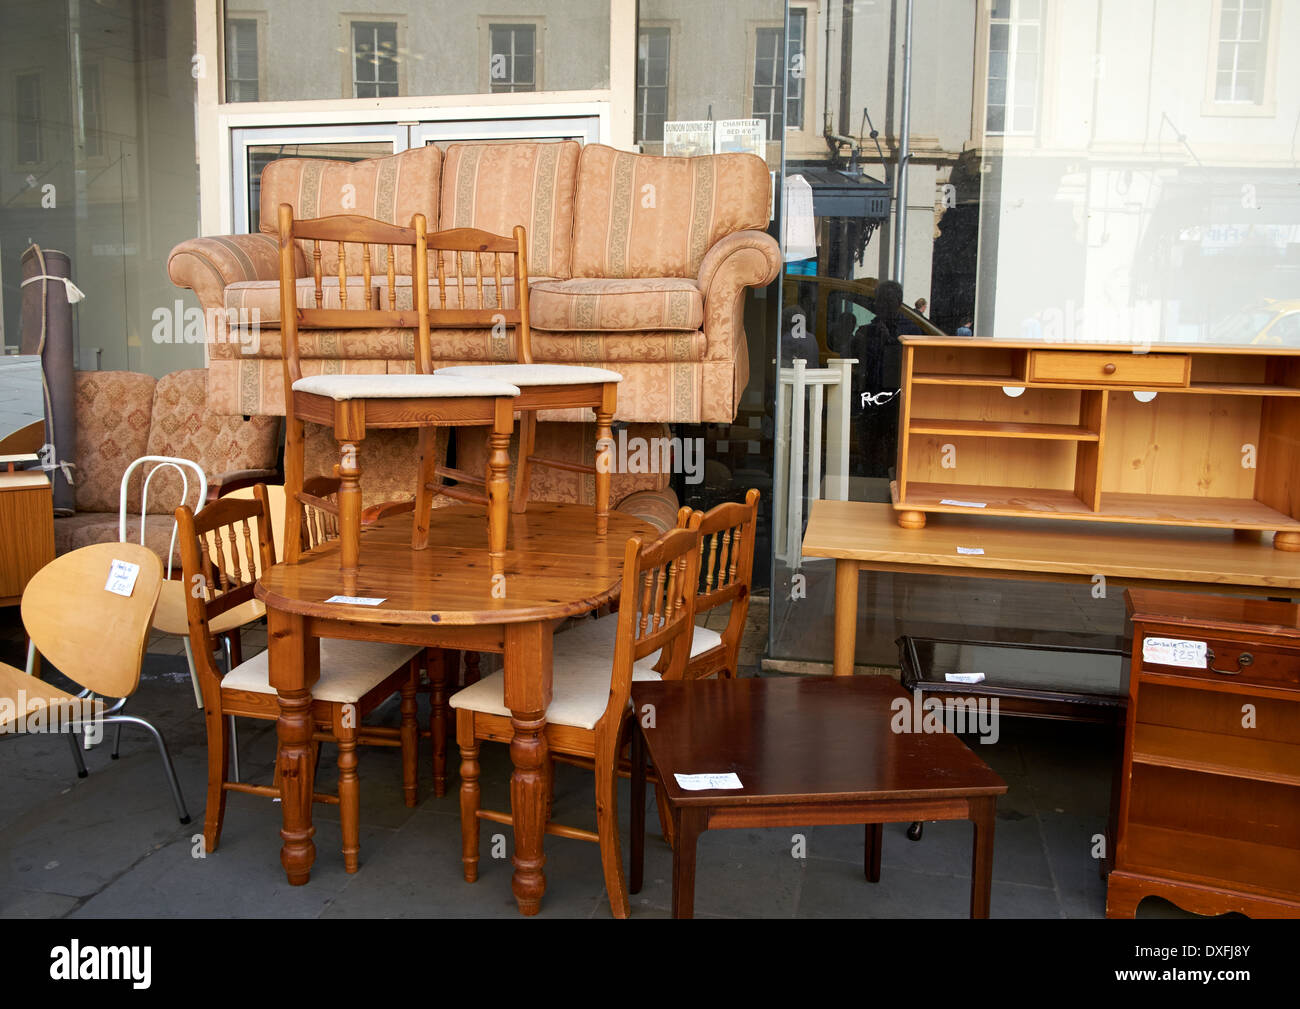 Sofa Sales In Glasgow Used Second Hand Furniture On Sale On A Uk High Street Stock Photo